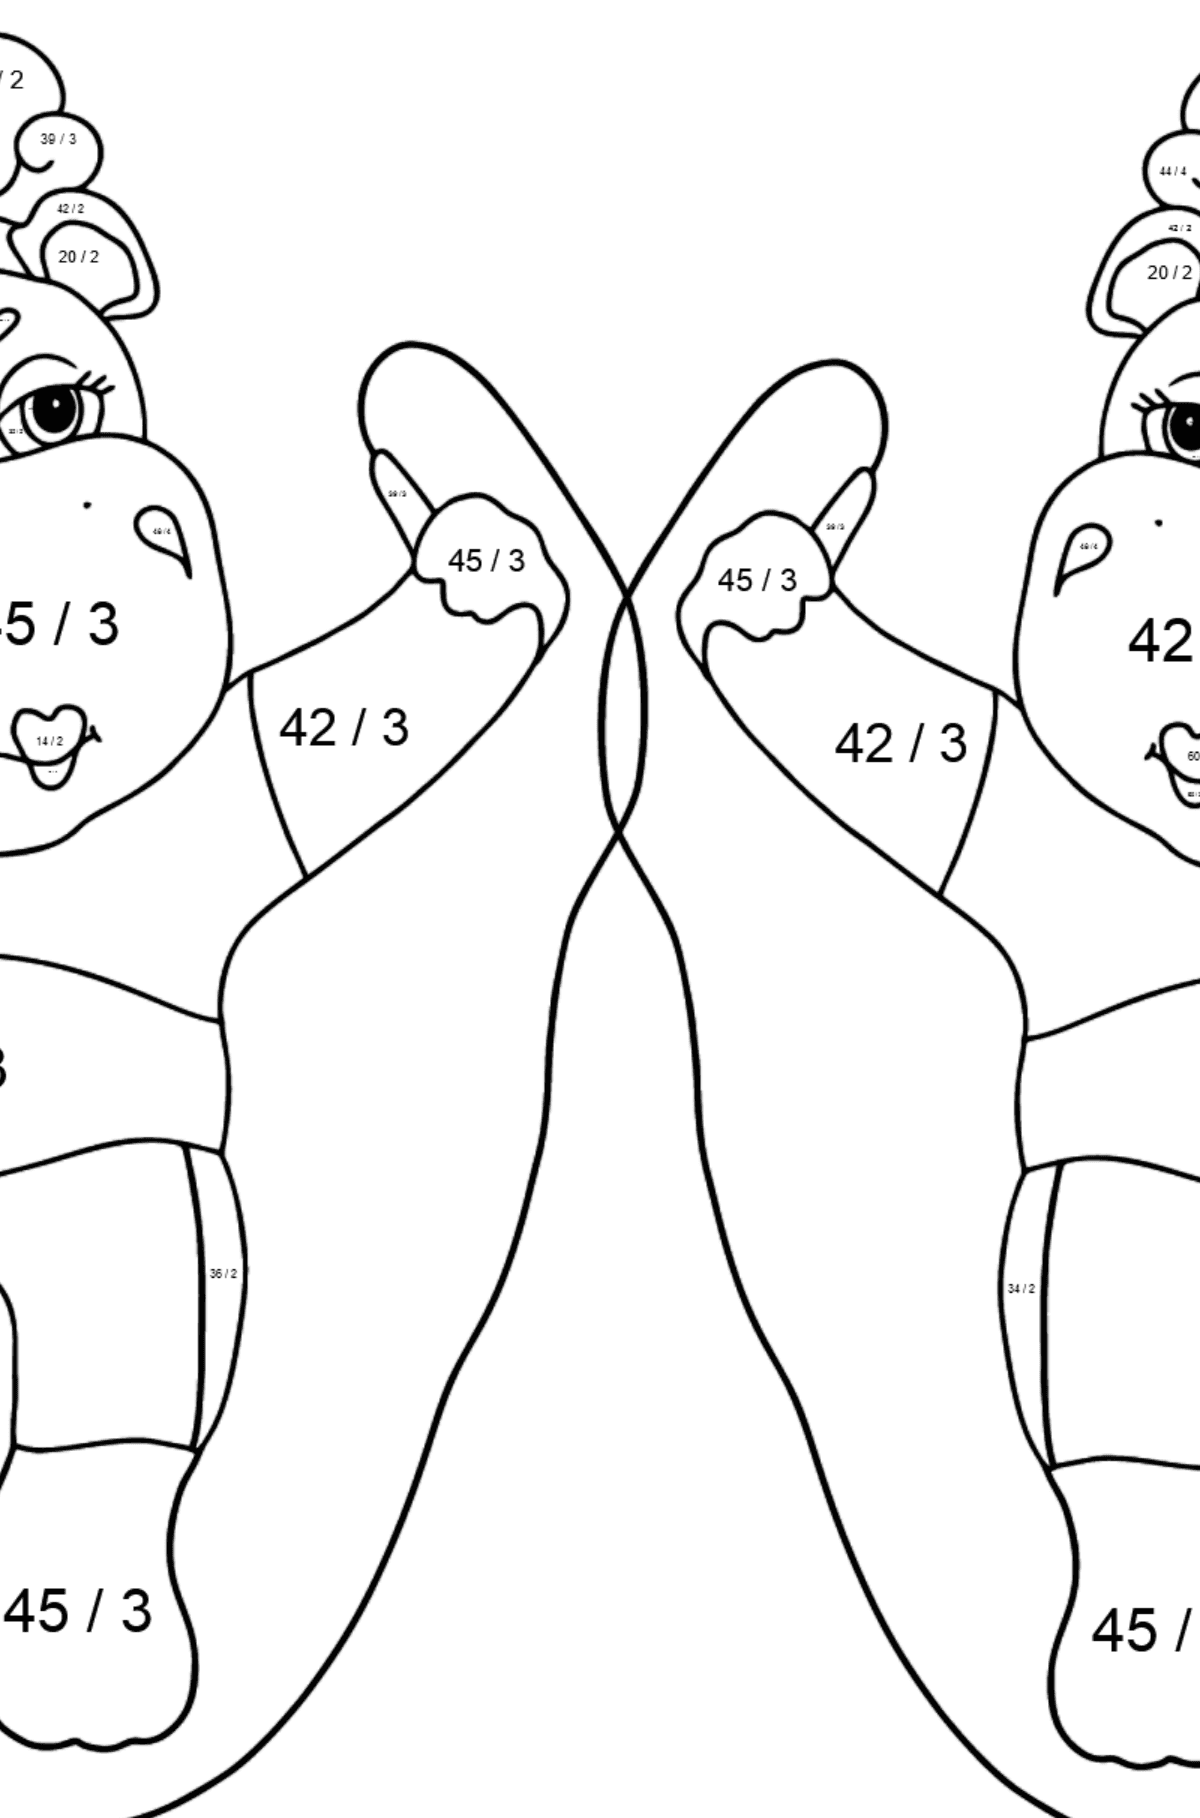 Coloring Page - Hippos are Exercising with Jump Ropes - Math Coloring - Division for Kids